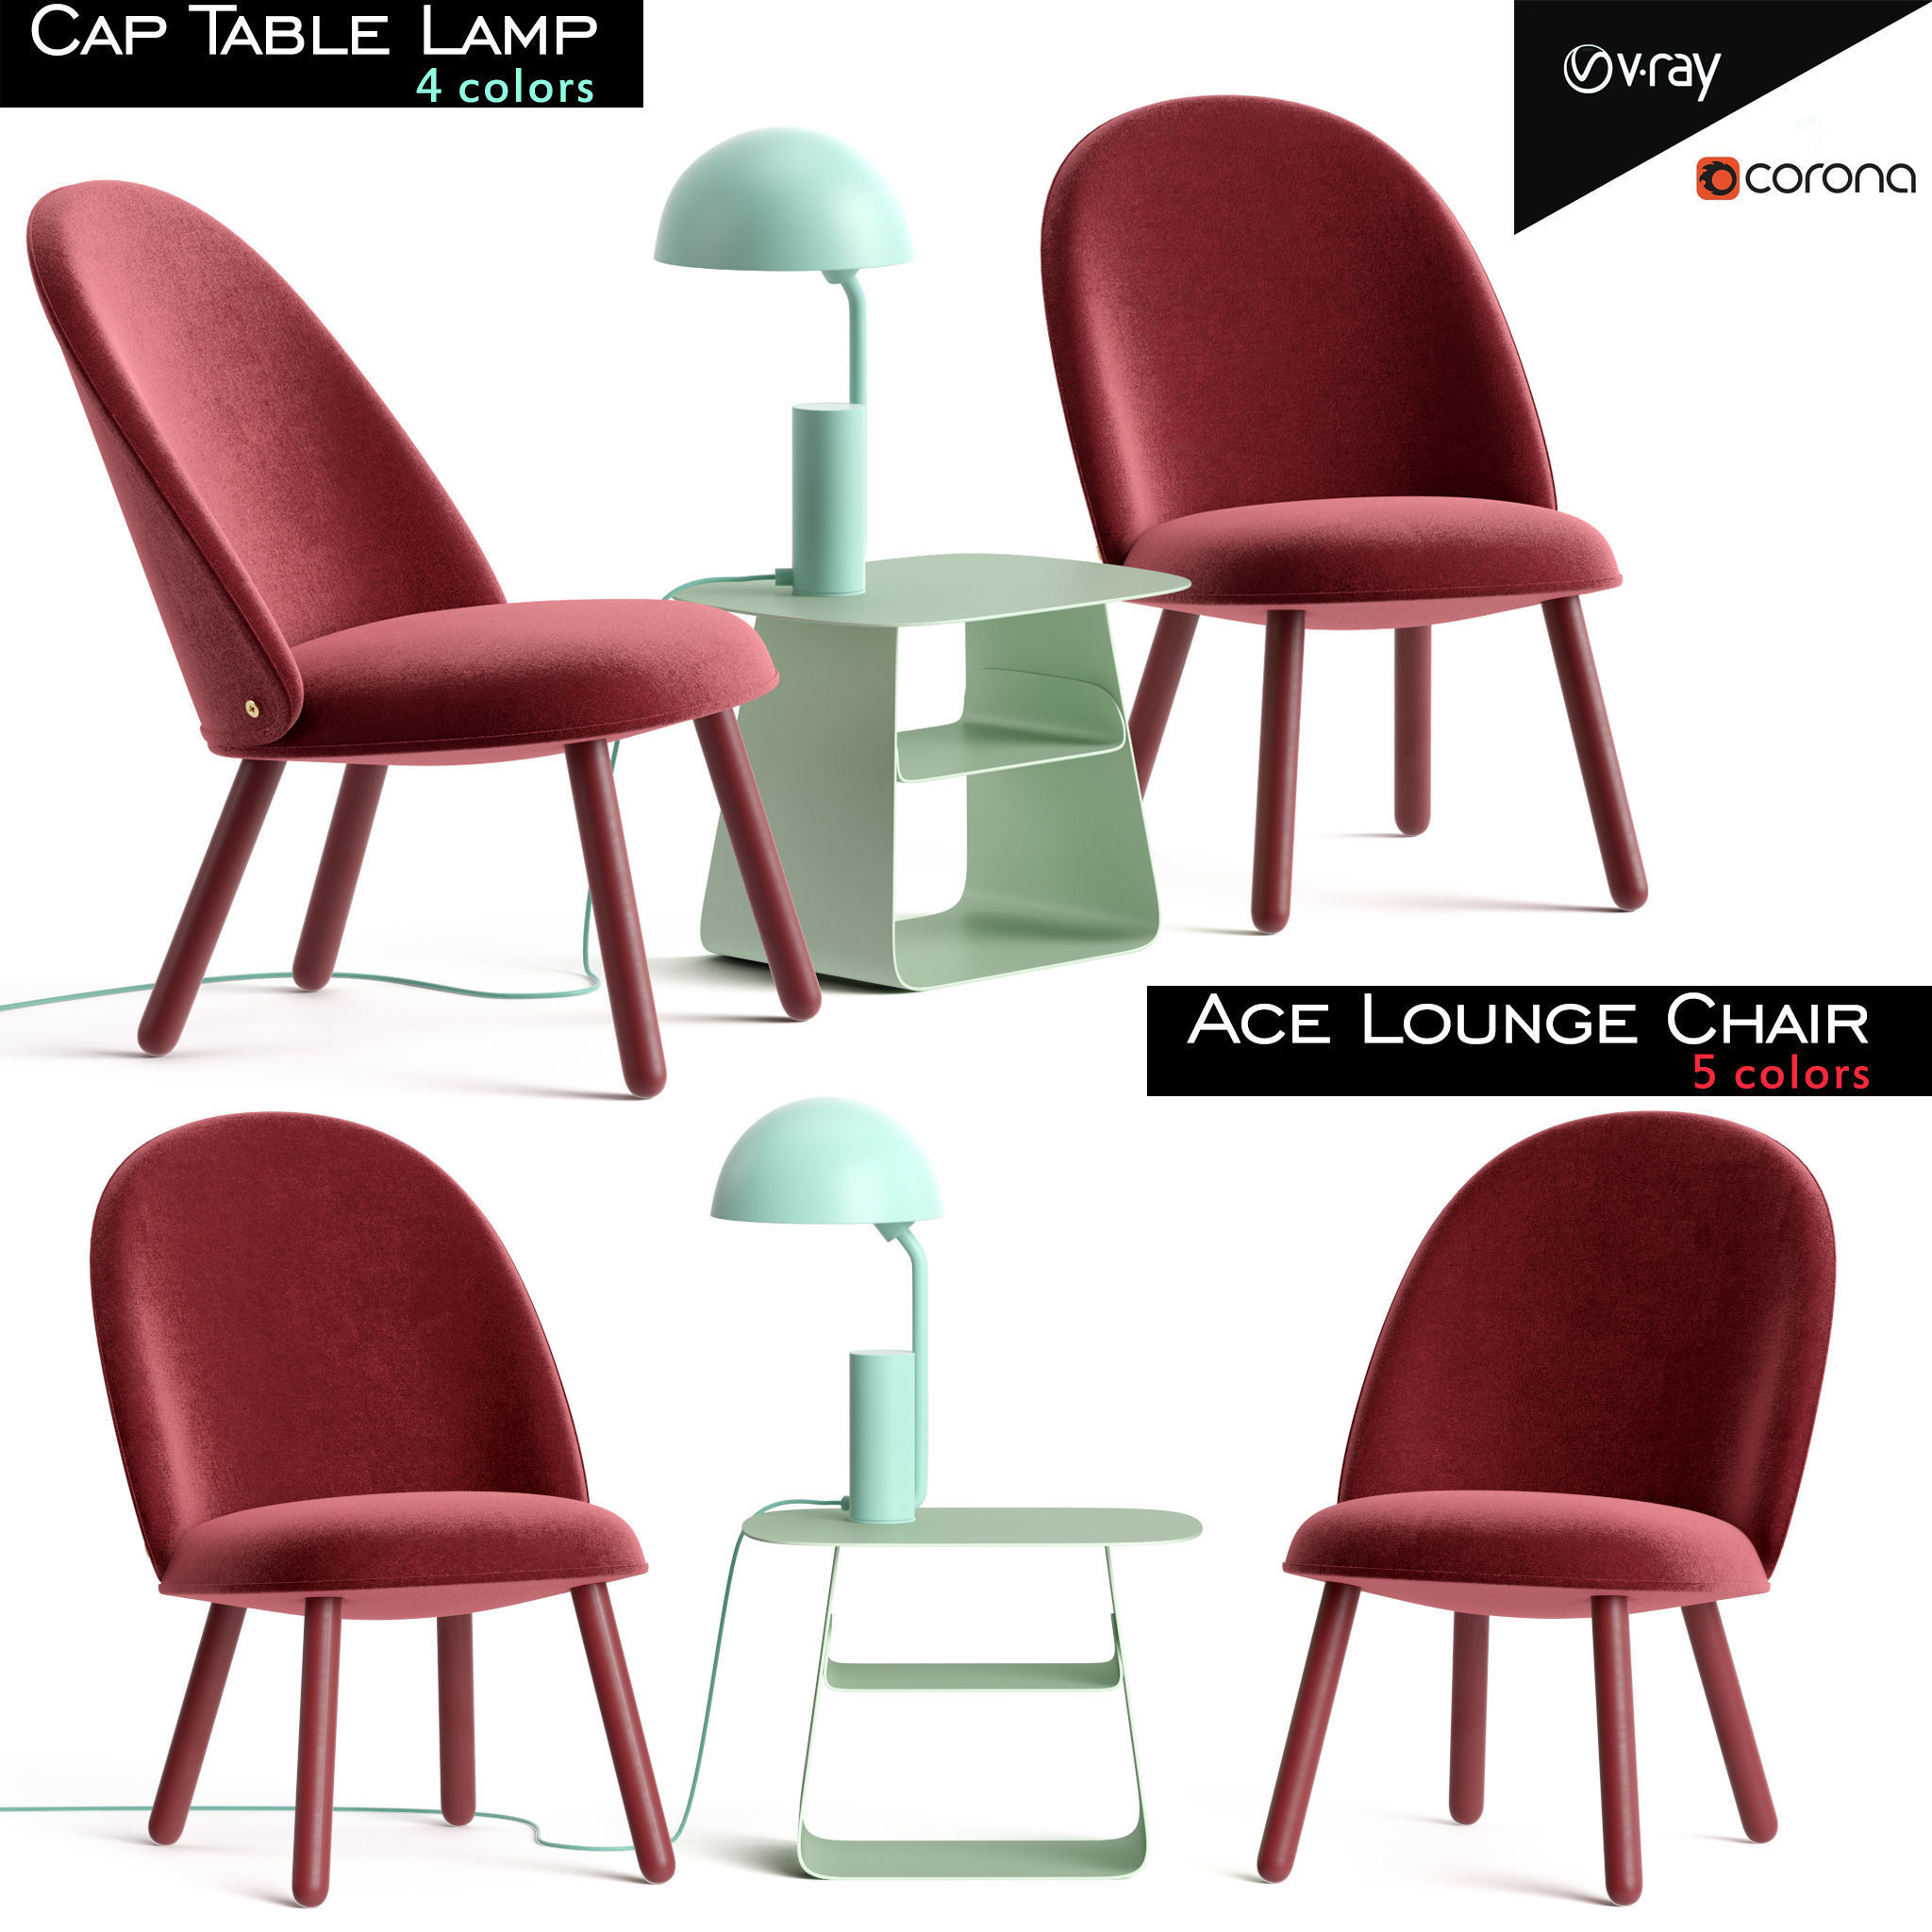 Ace Lounge Chair and Cap Table Lamp